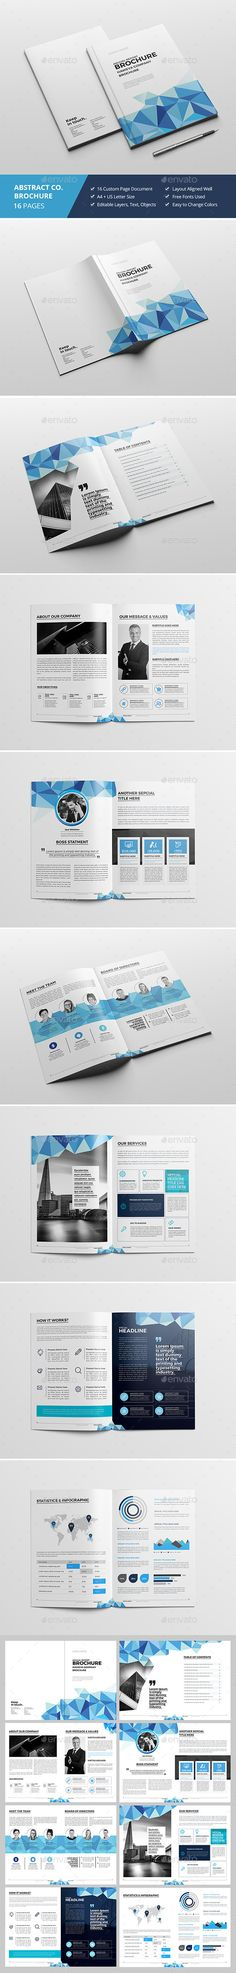 Blue triangle Vector annual report Leaflet Brochure Flyer template - business annual report template